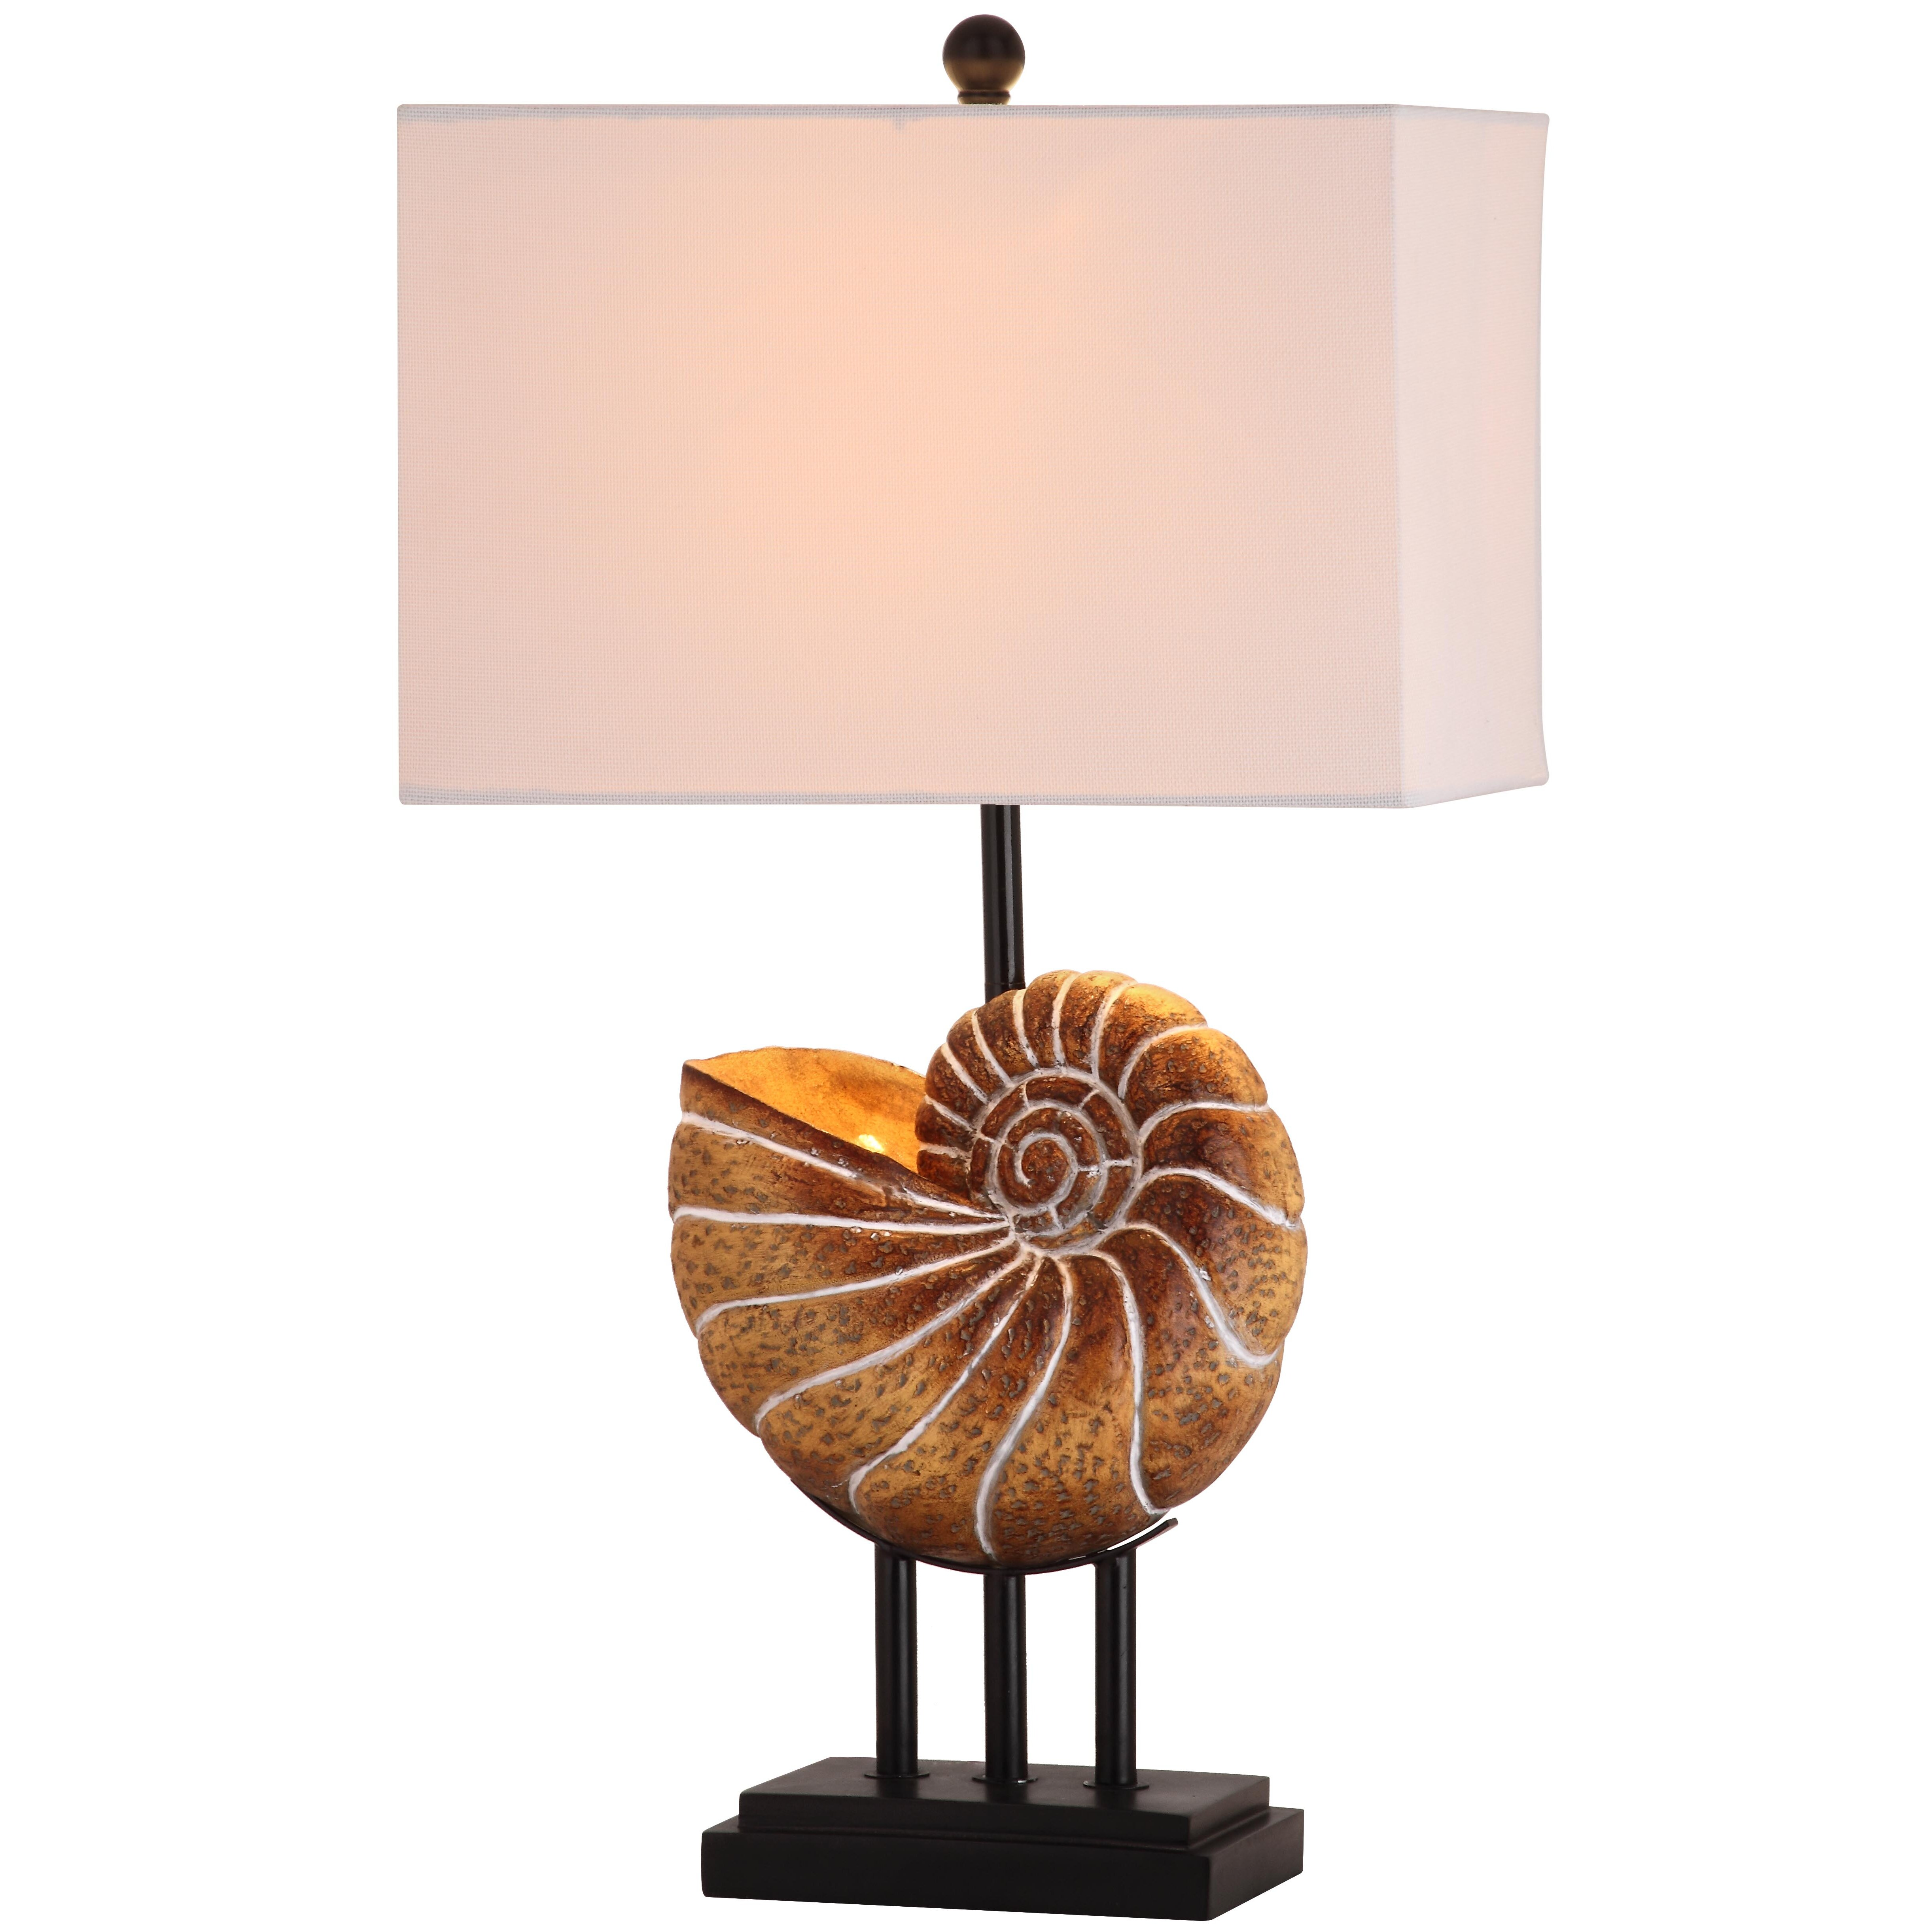 shell 28 h table lamp with rectangular shade reviews wayfair. Black Bedroom Furniture Sets. Home Design Ideas